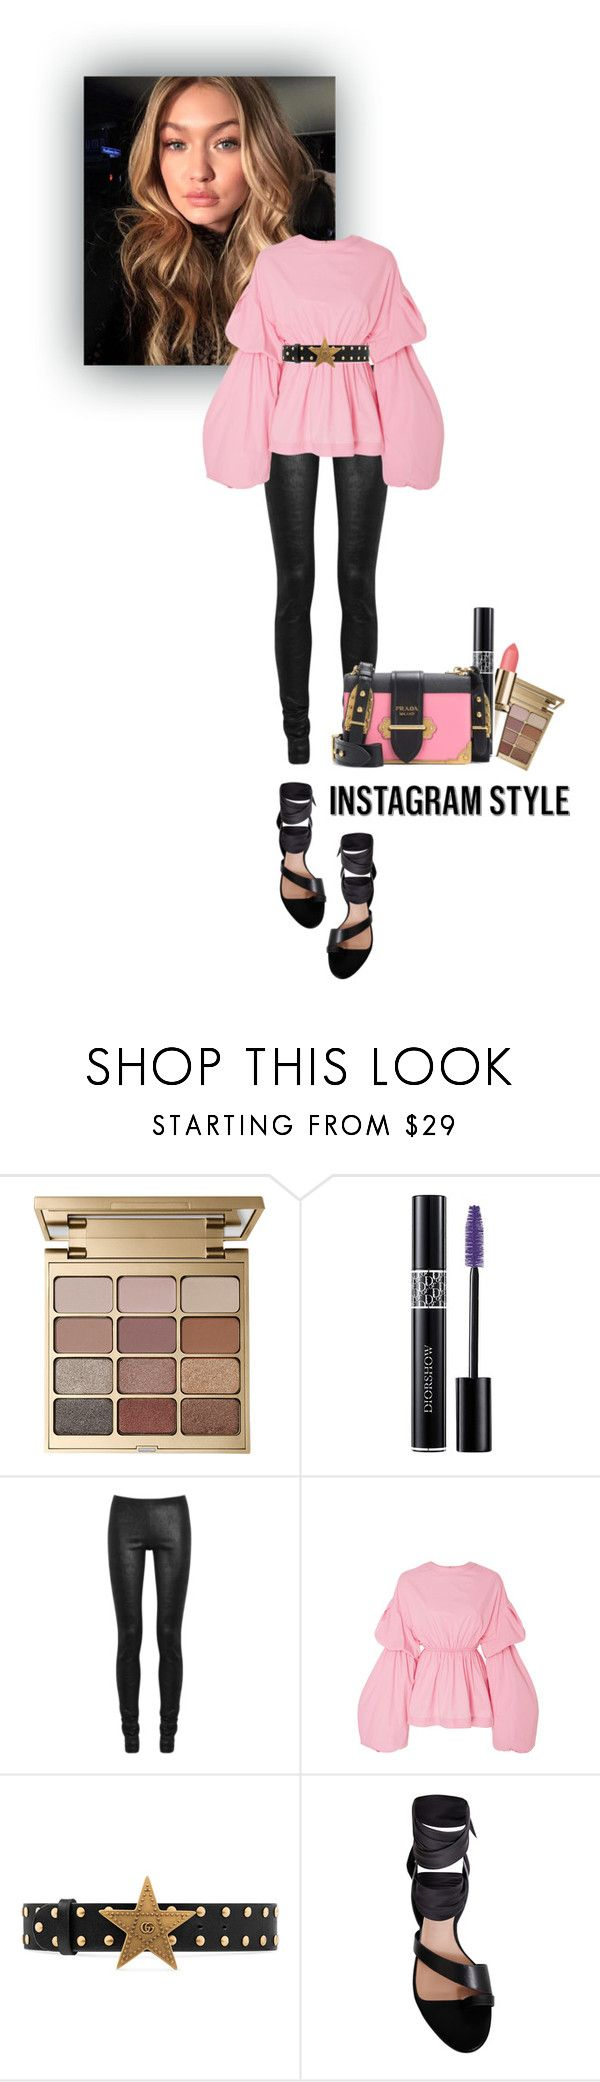 """SELFIE"" by gizaboudib on Polyvore featuring moda, Stila, Christian Dior, Rick Owens, Gucci, Ginger & Smart, Prada, 60secondstyle y PVShareYourStyle"